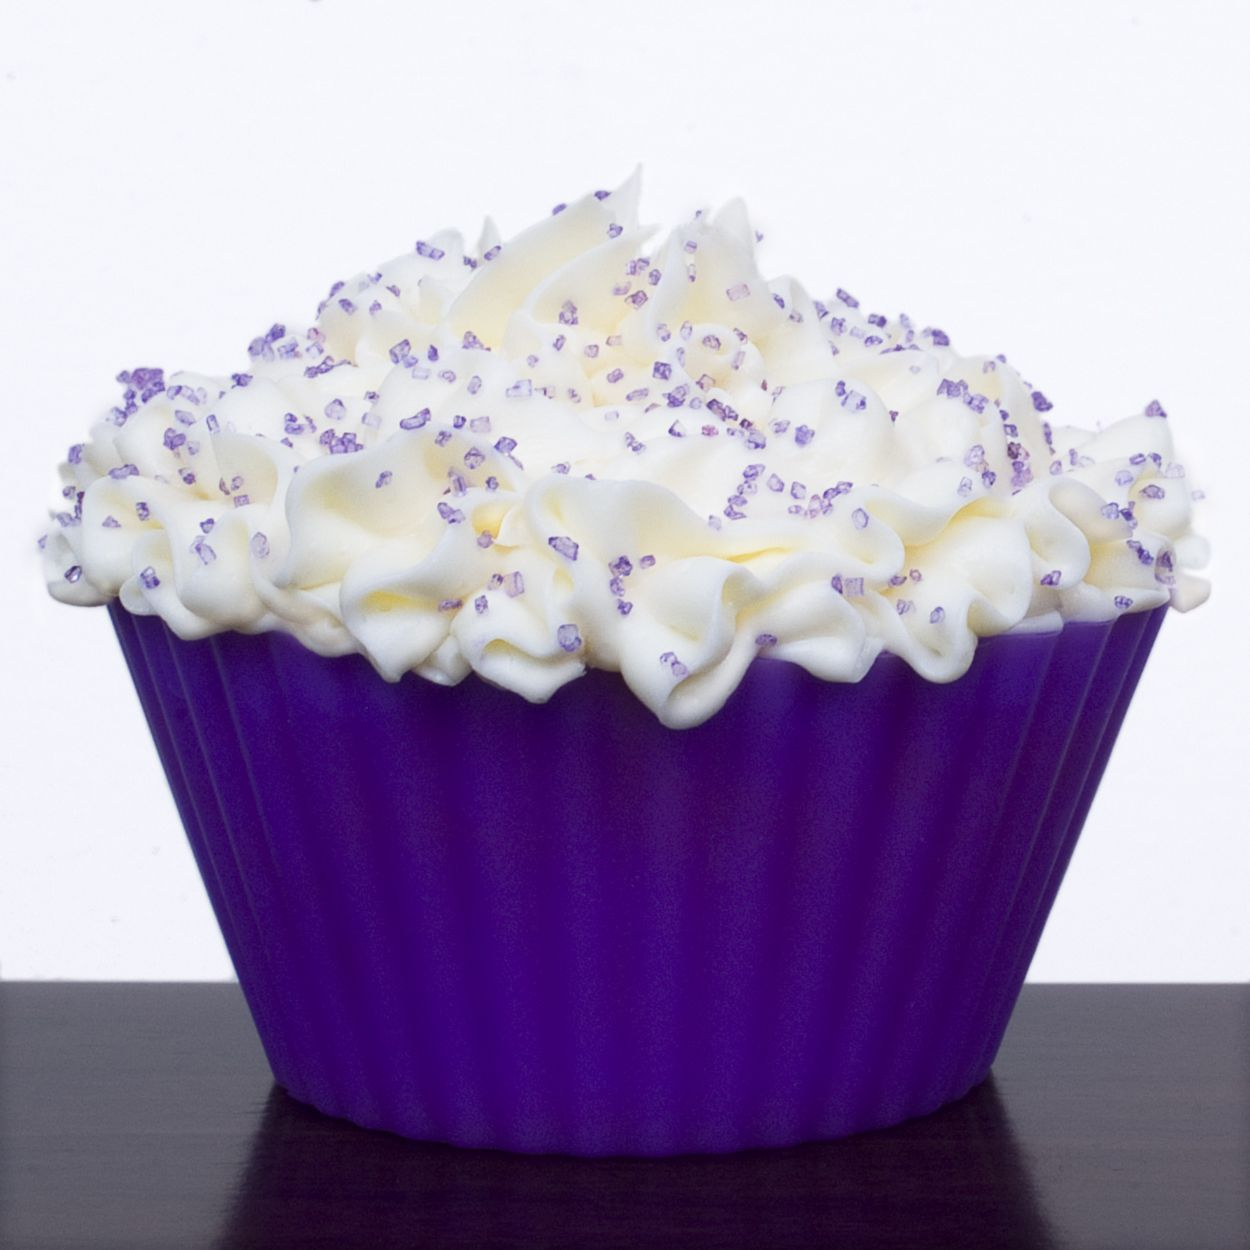 Cool Purple Silicone Cupcake Liners Non Stick And Reusable